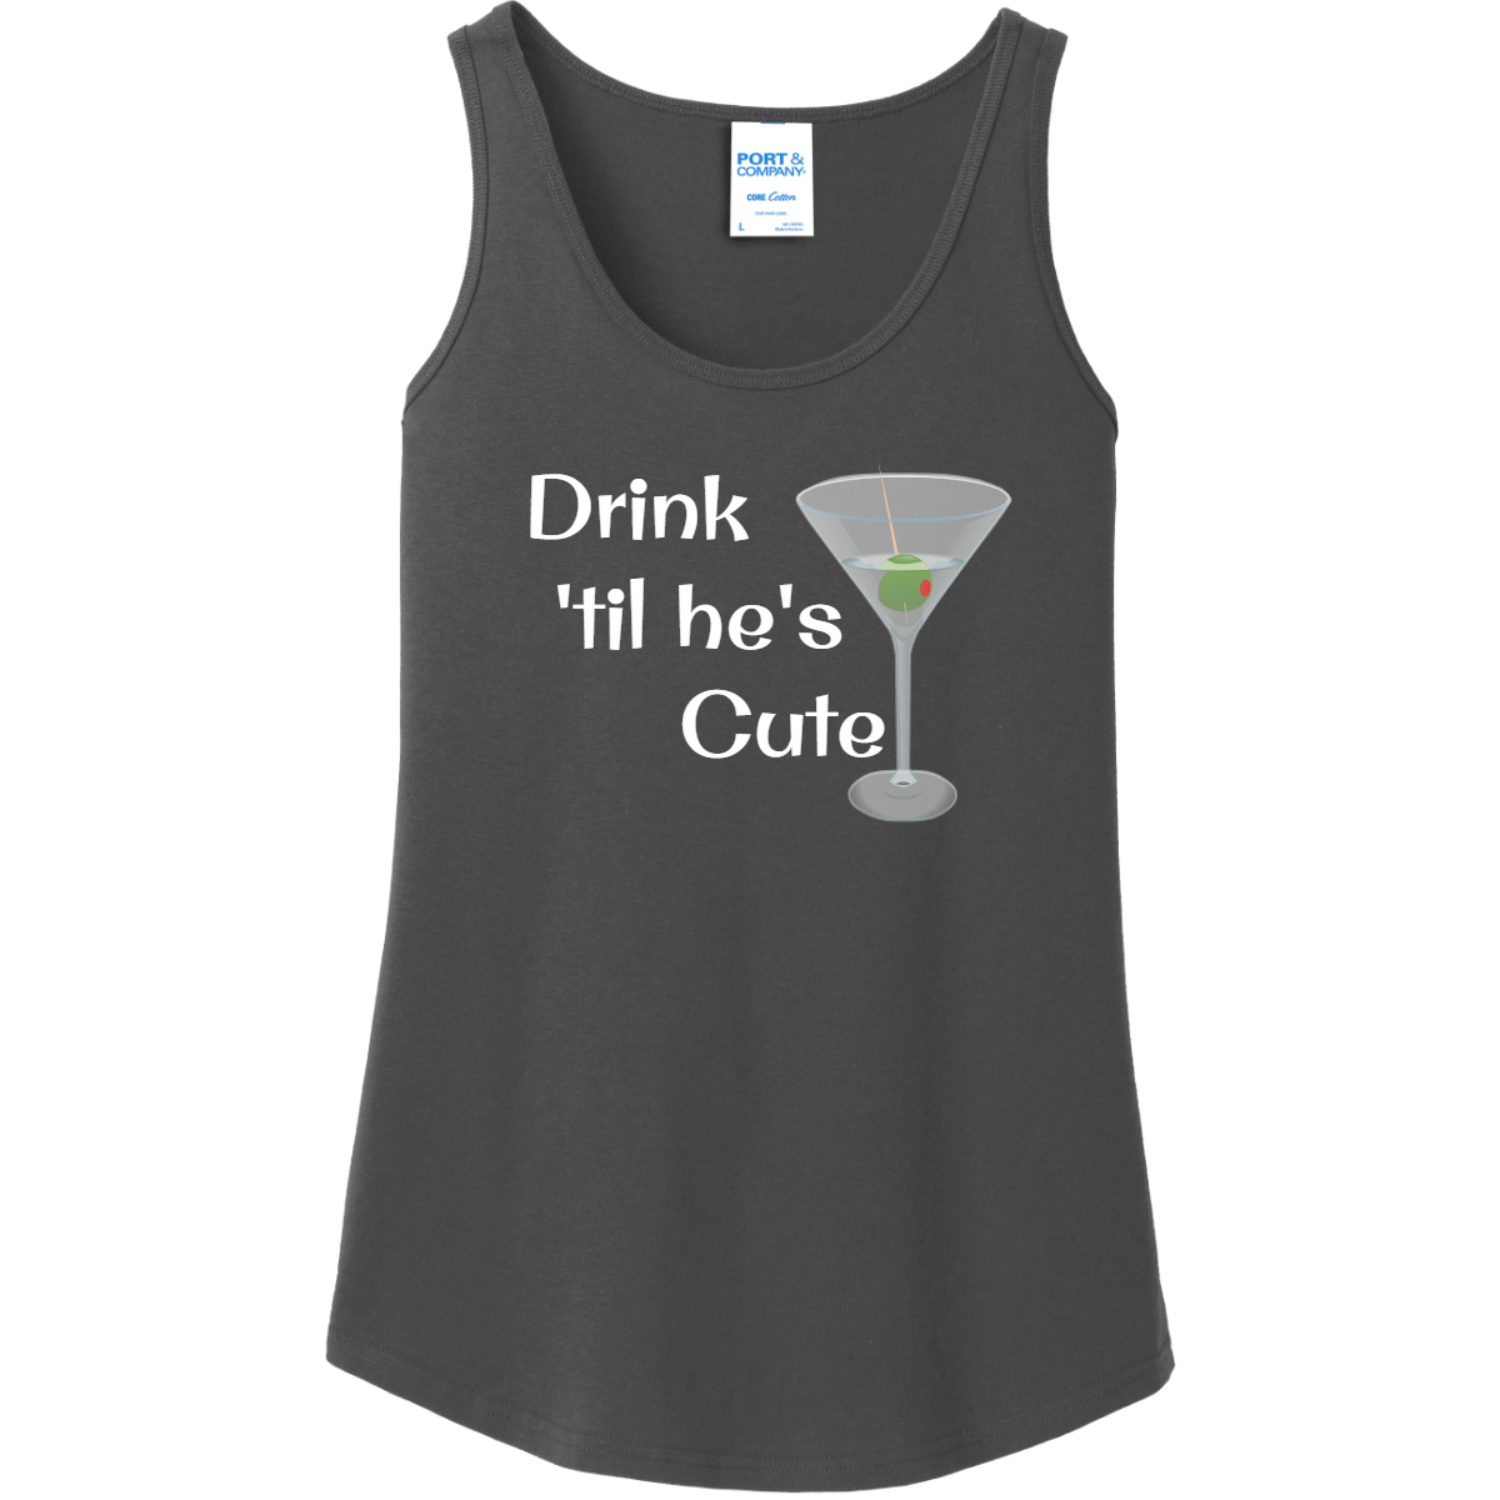 Drink 'Til He's Cute Tank Top for Women Charcoal Port And Company Ladies Tank Top LPC54TT